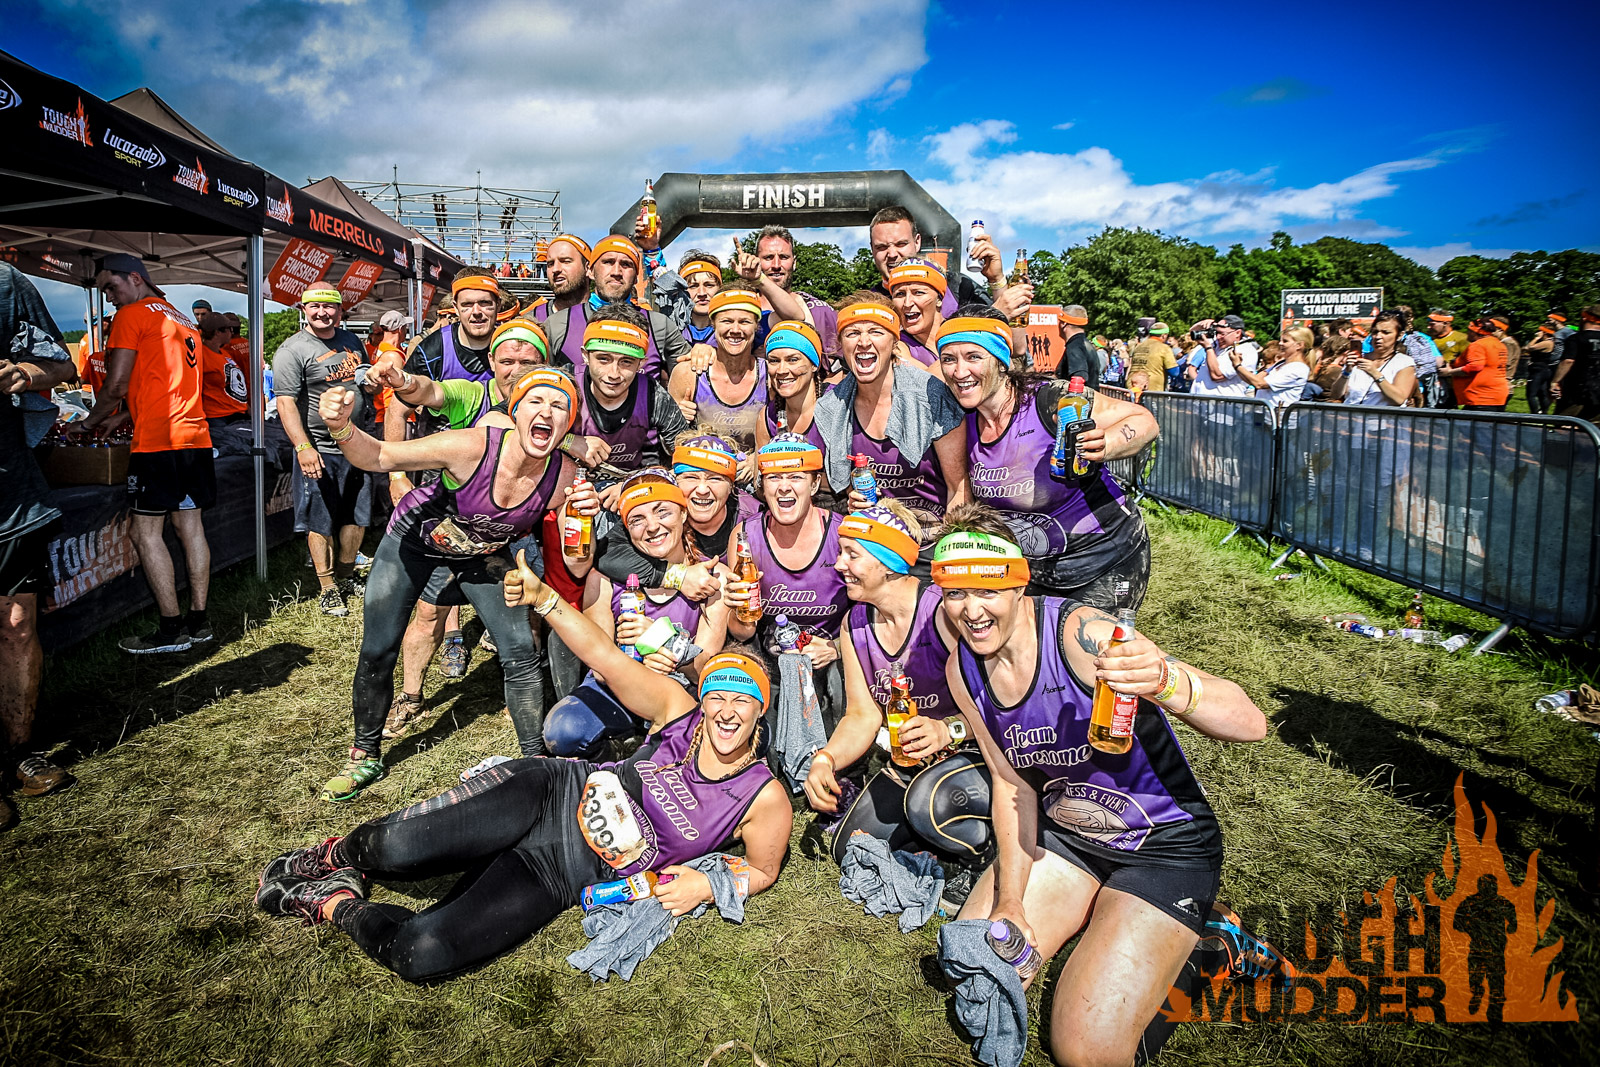 Tough-mudder-2017-sports-photography-edinburgh-glasgow-25.jpg